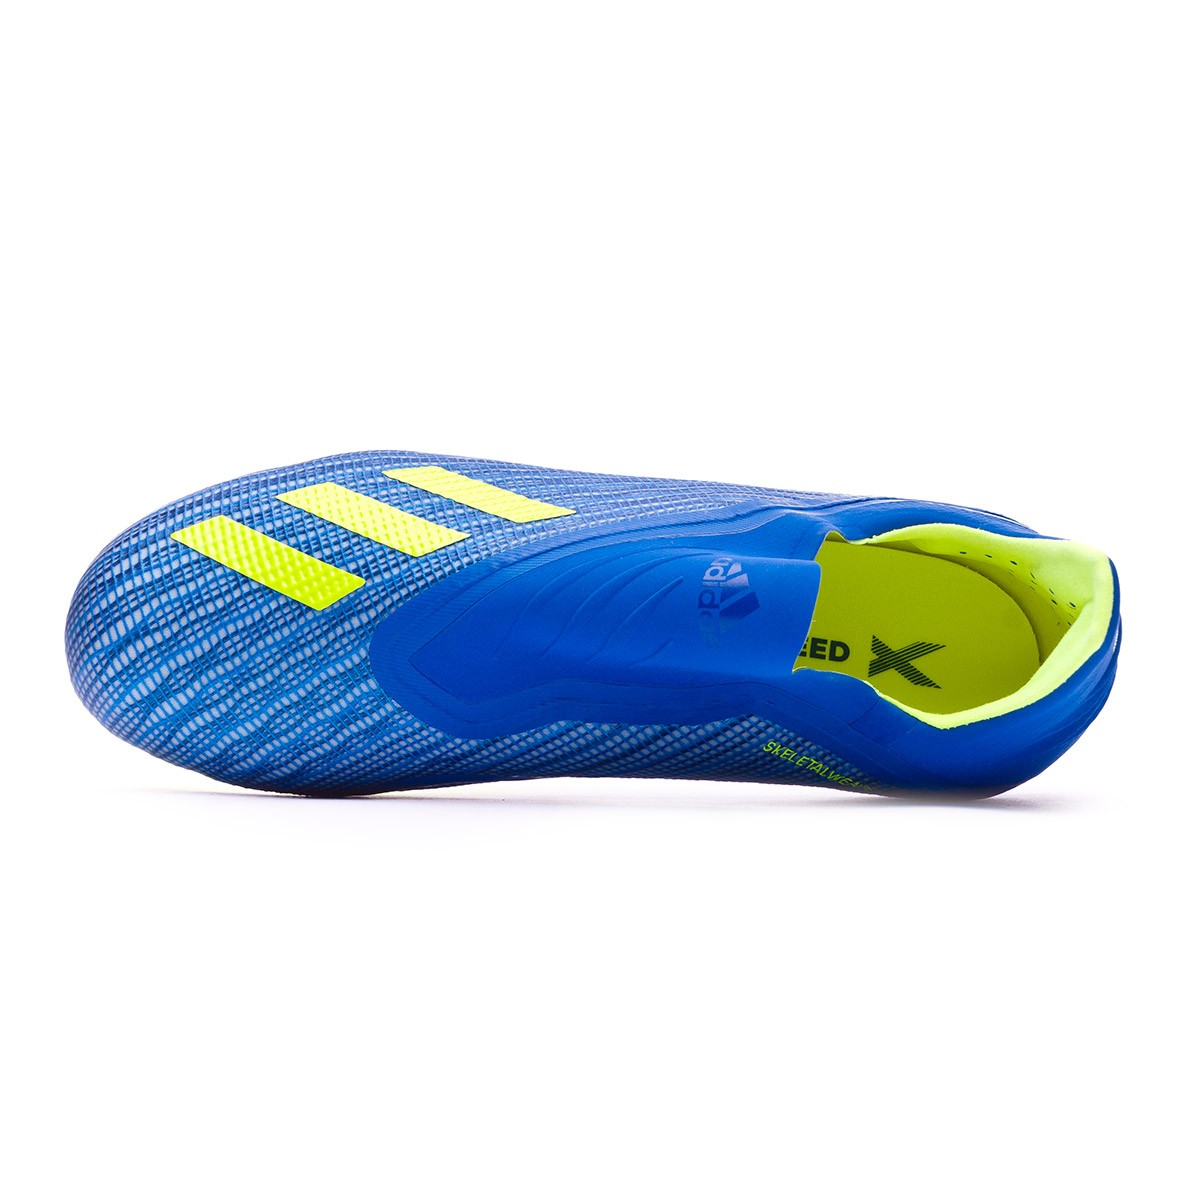 the best attitude ac7f8 15904 Boot adidas Kids X 18+ FG Foot blue-Solar yellow-Black - Tienda de fútbol  Fútbol Emotion